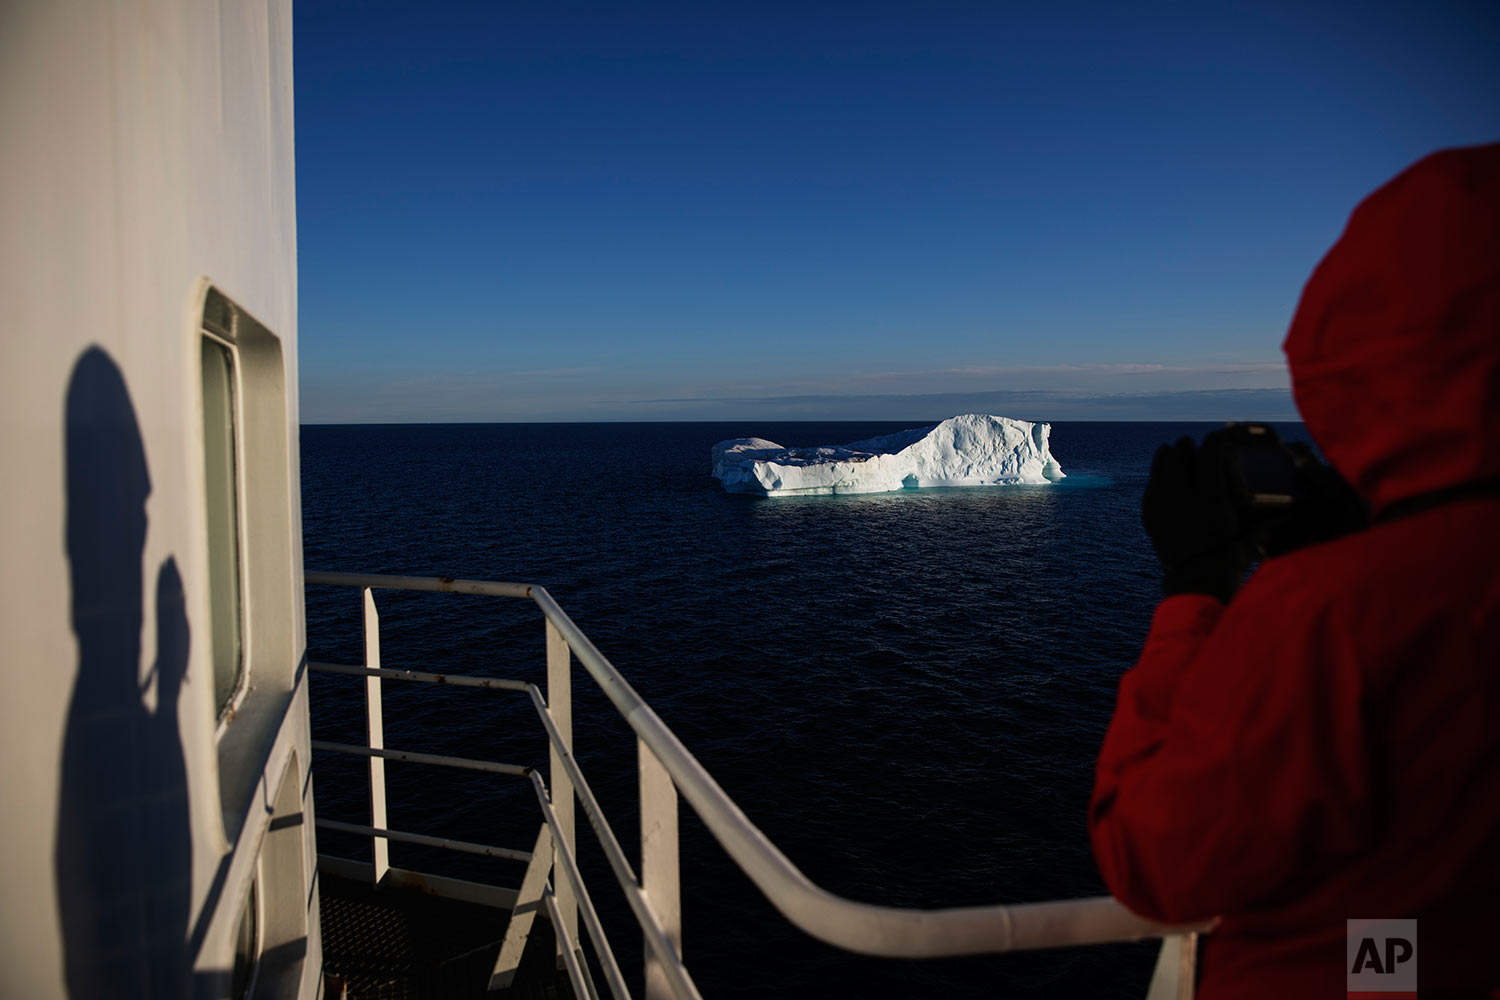 Researcher Tiina Jaaskelainen takes a picture of an iceberg floating in Baffin Bay in the Canadian Arctic Archipelago while aboard the Finnish icebreaker MSV Nordica, Tuesday, July 25, 2017.  (AP Photo/David Goldman)